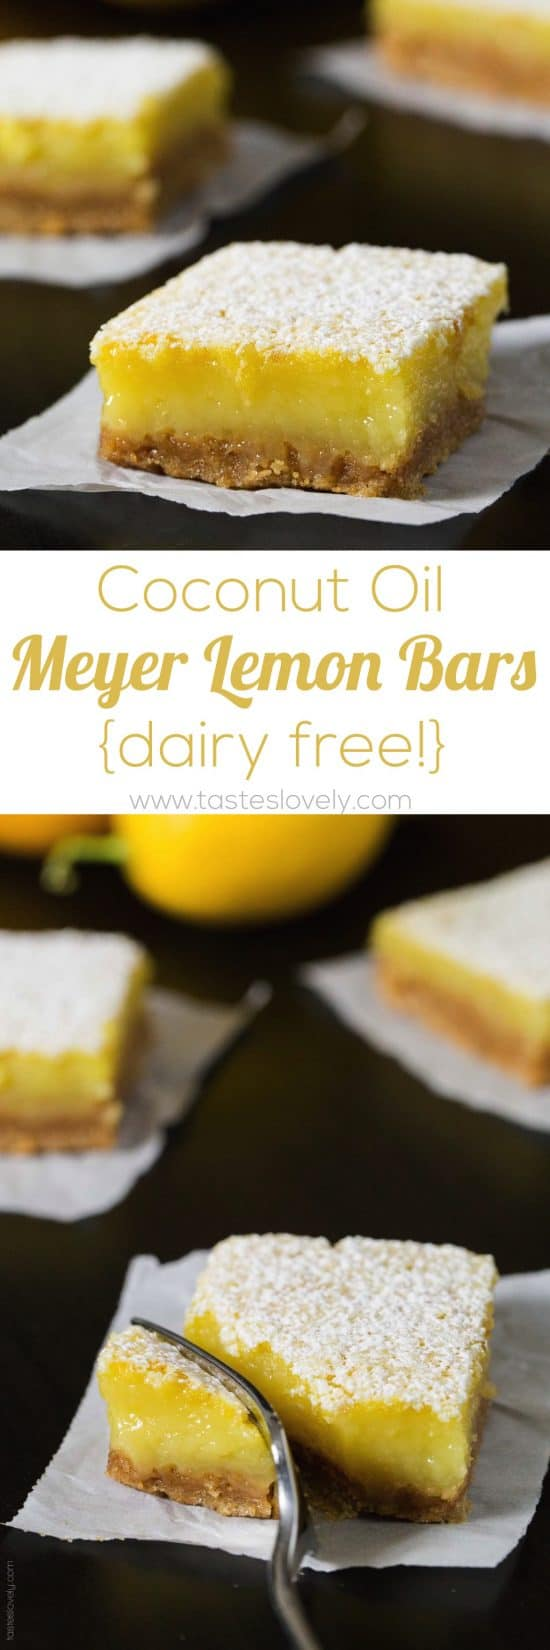 Coconut Oil Meyer Lemon Bars - a healthier and dairy free lemon bar!